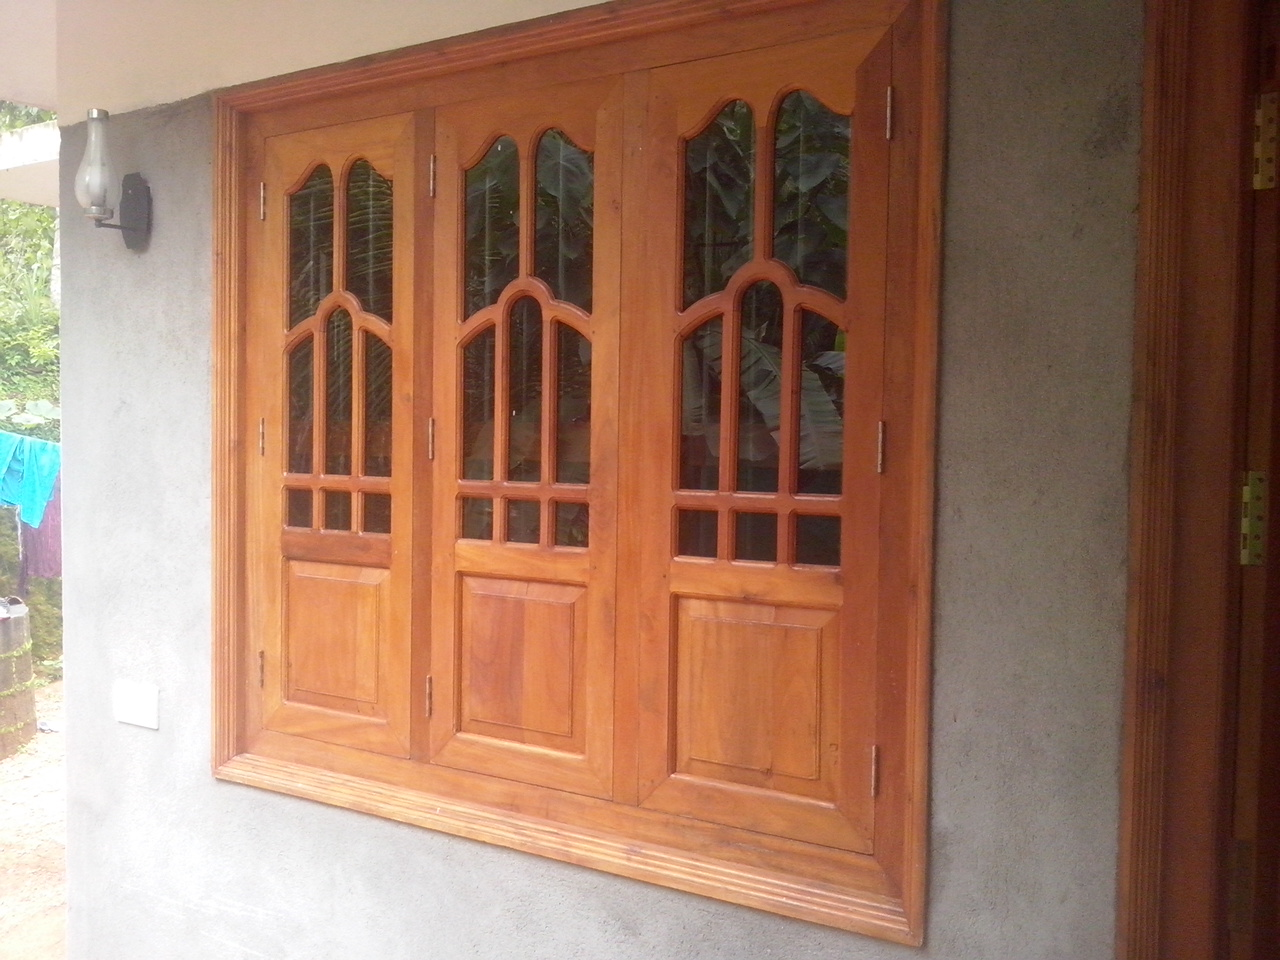 Bavas wood works kerala style wooden window door designs for Window net design